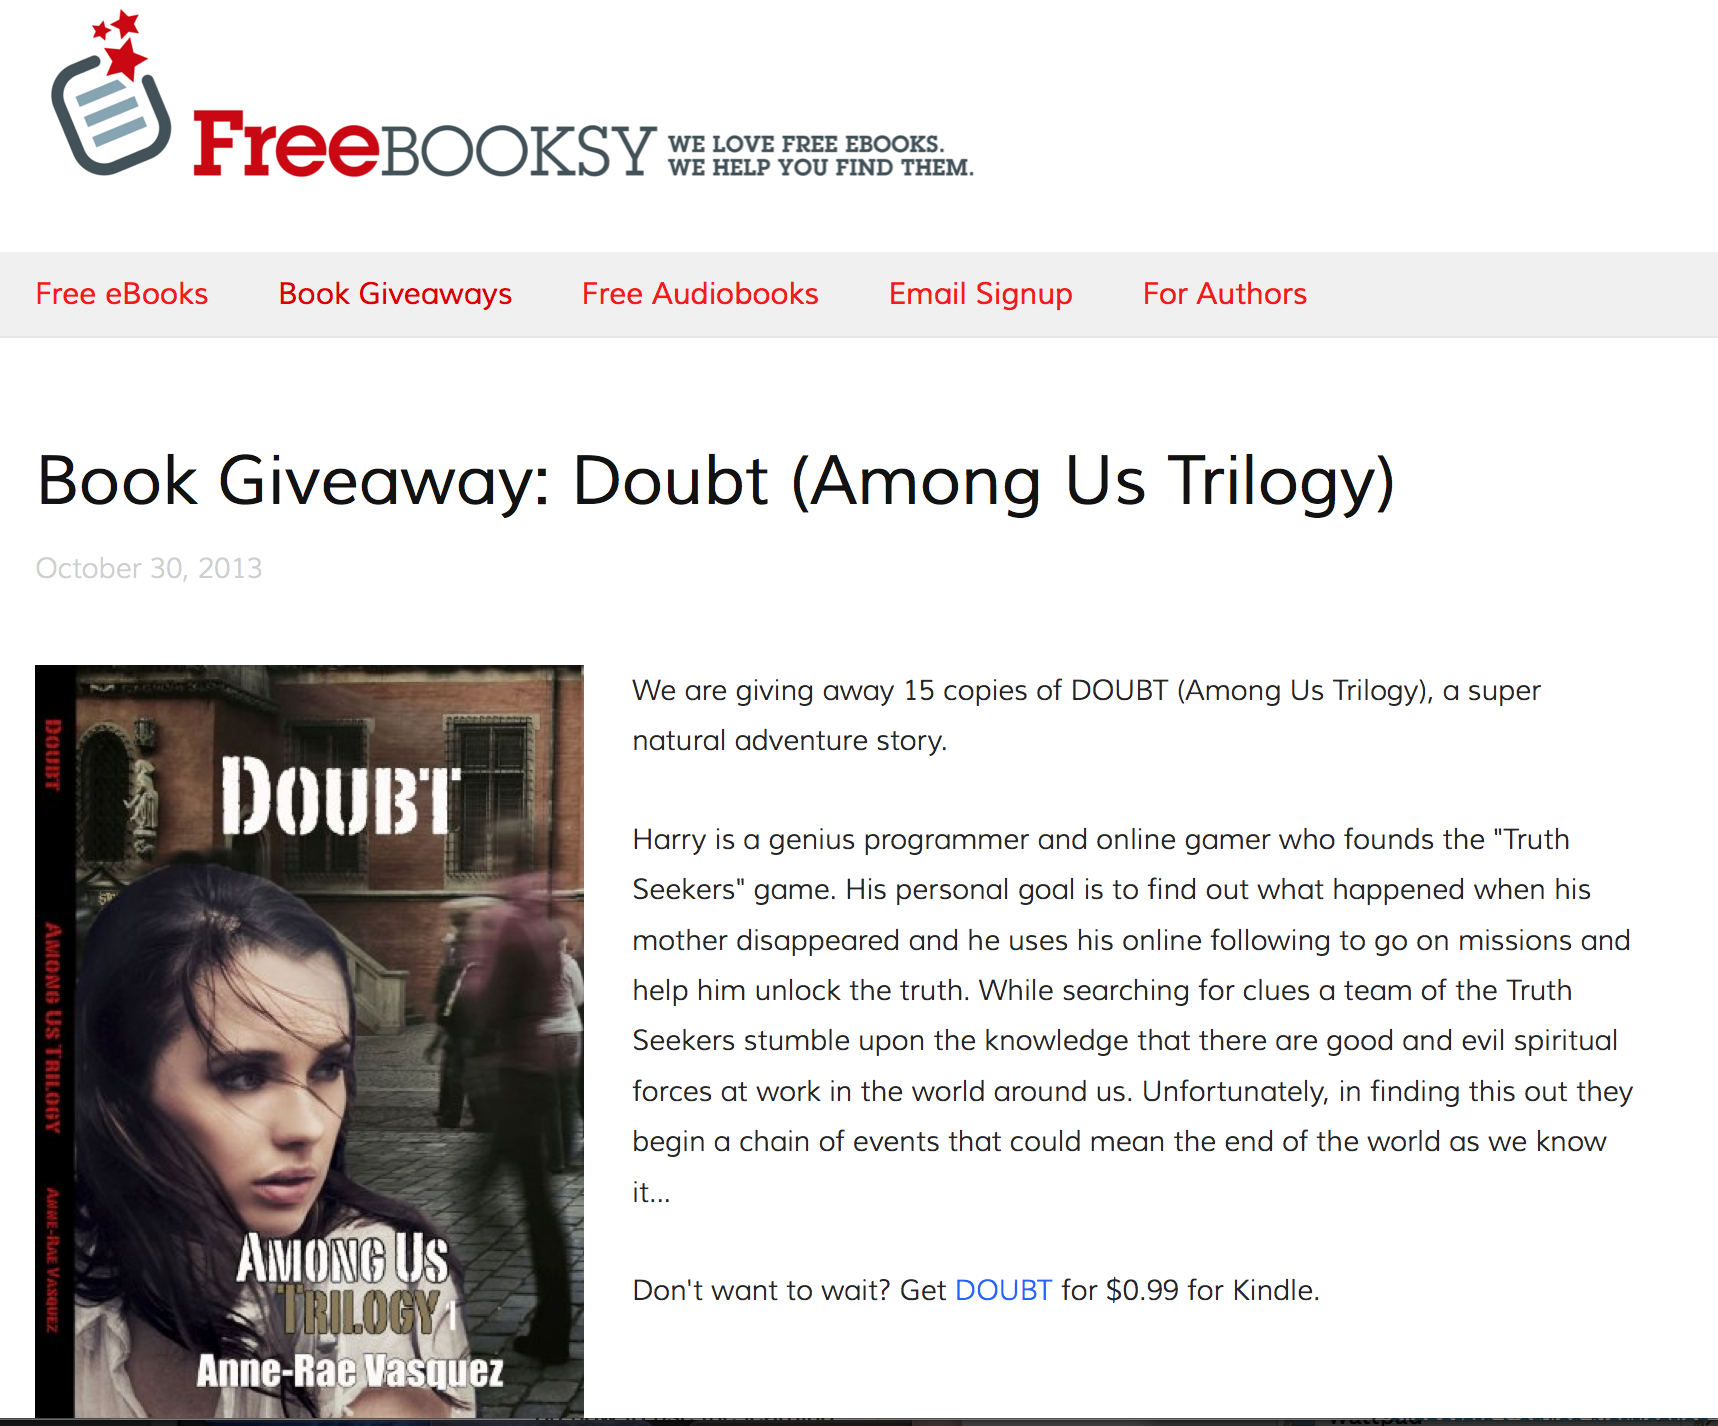 FreeBooksy Giveaway of Doubt Among Us Trilogy